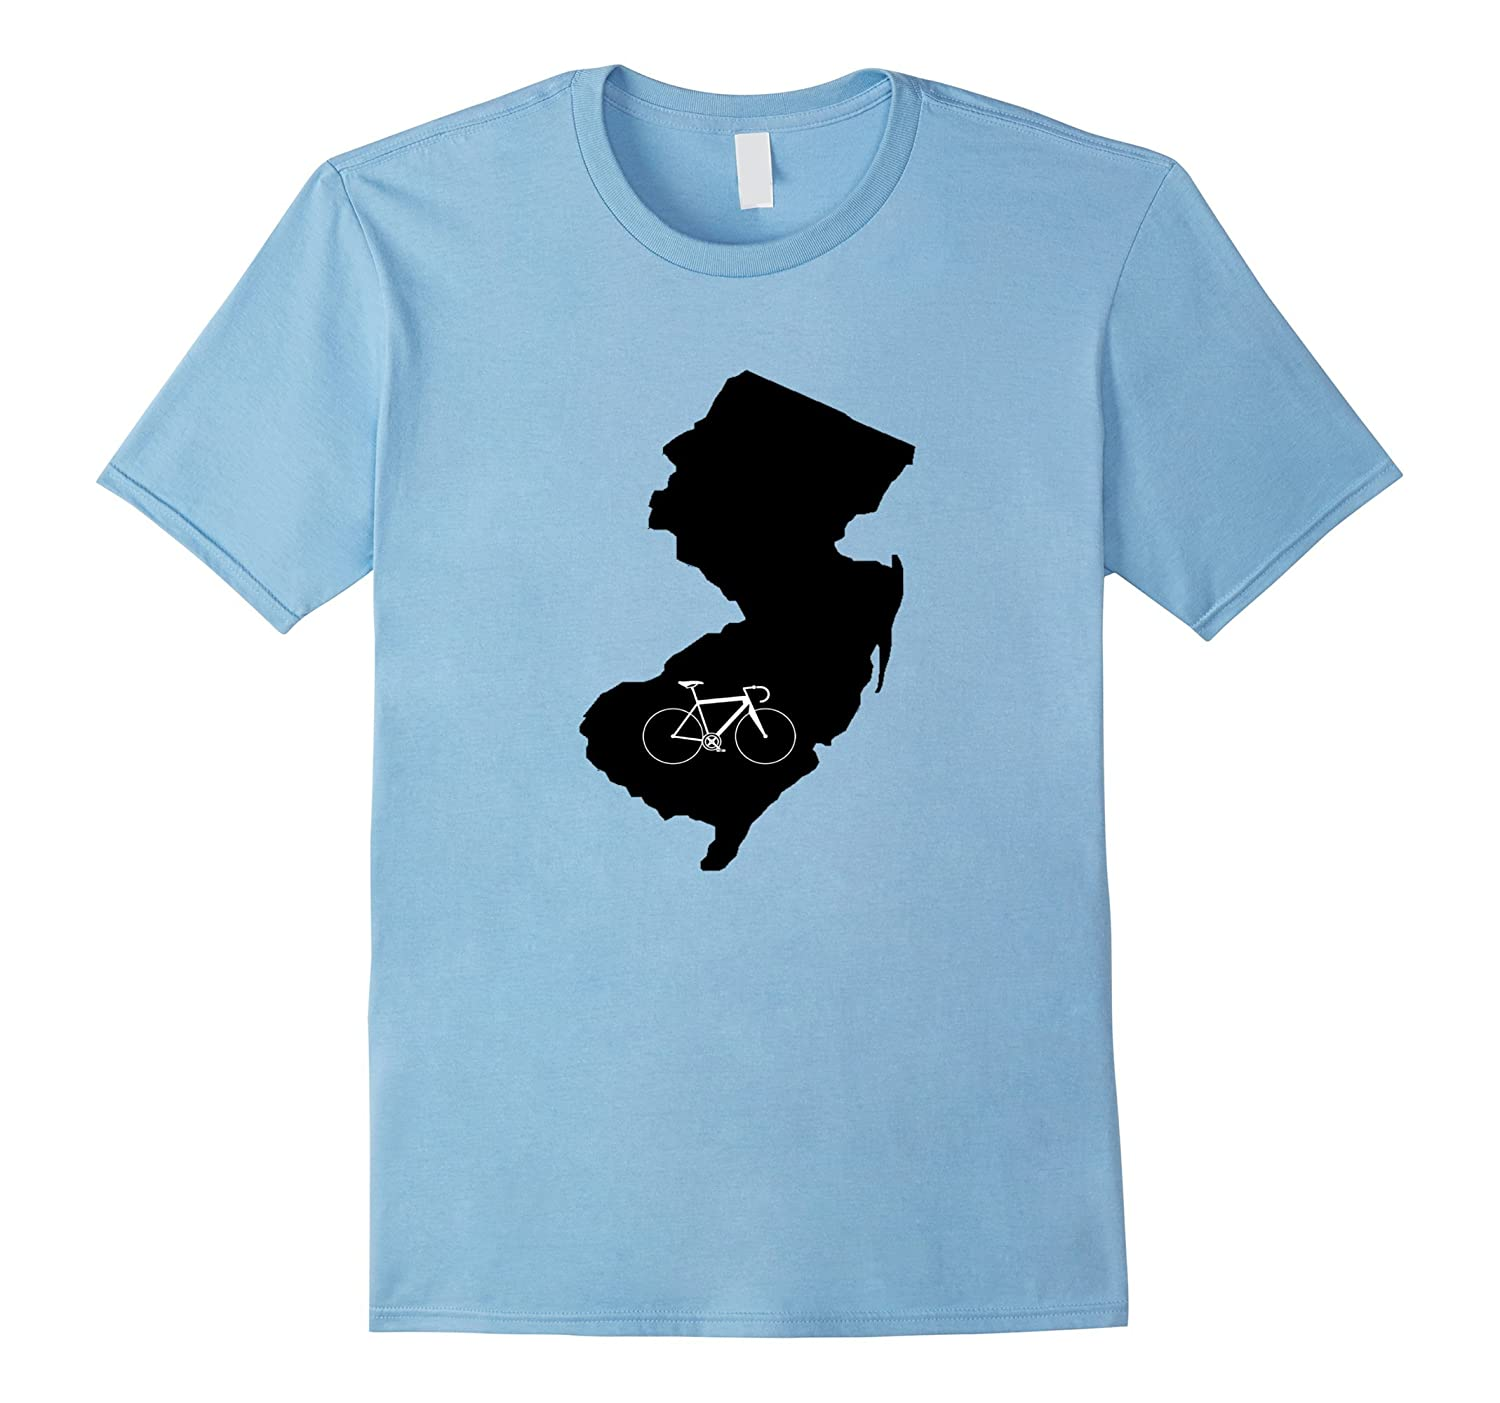 Bicycle New Jersey Shirt, Cyclist Tee, State Road Bike-Art